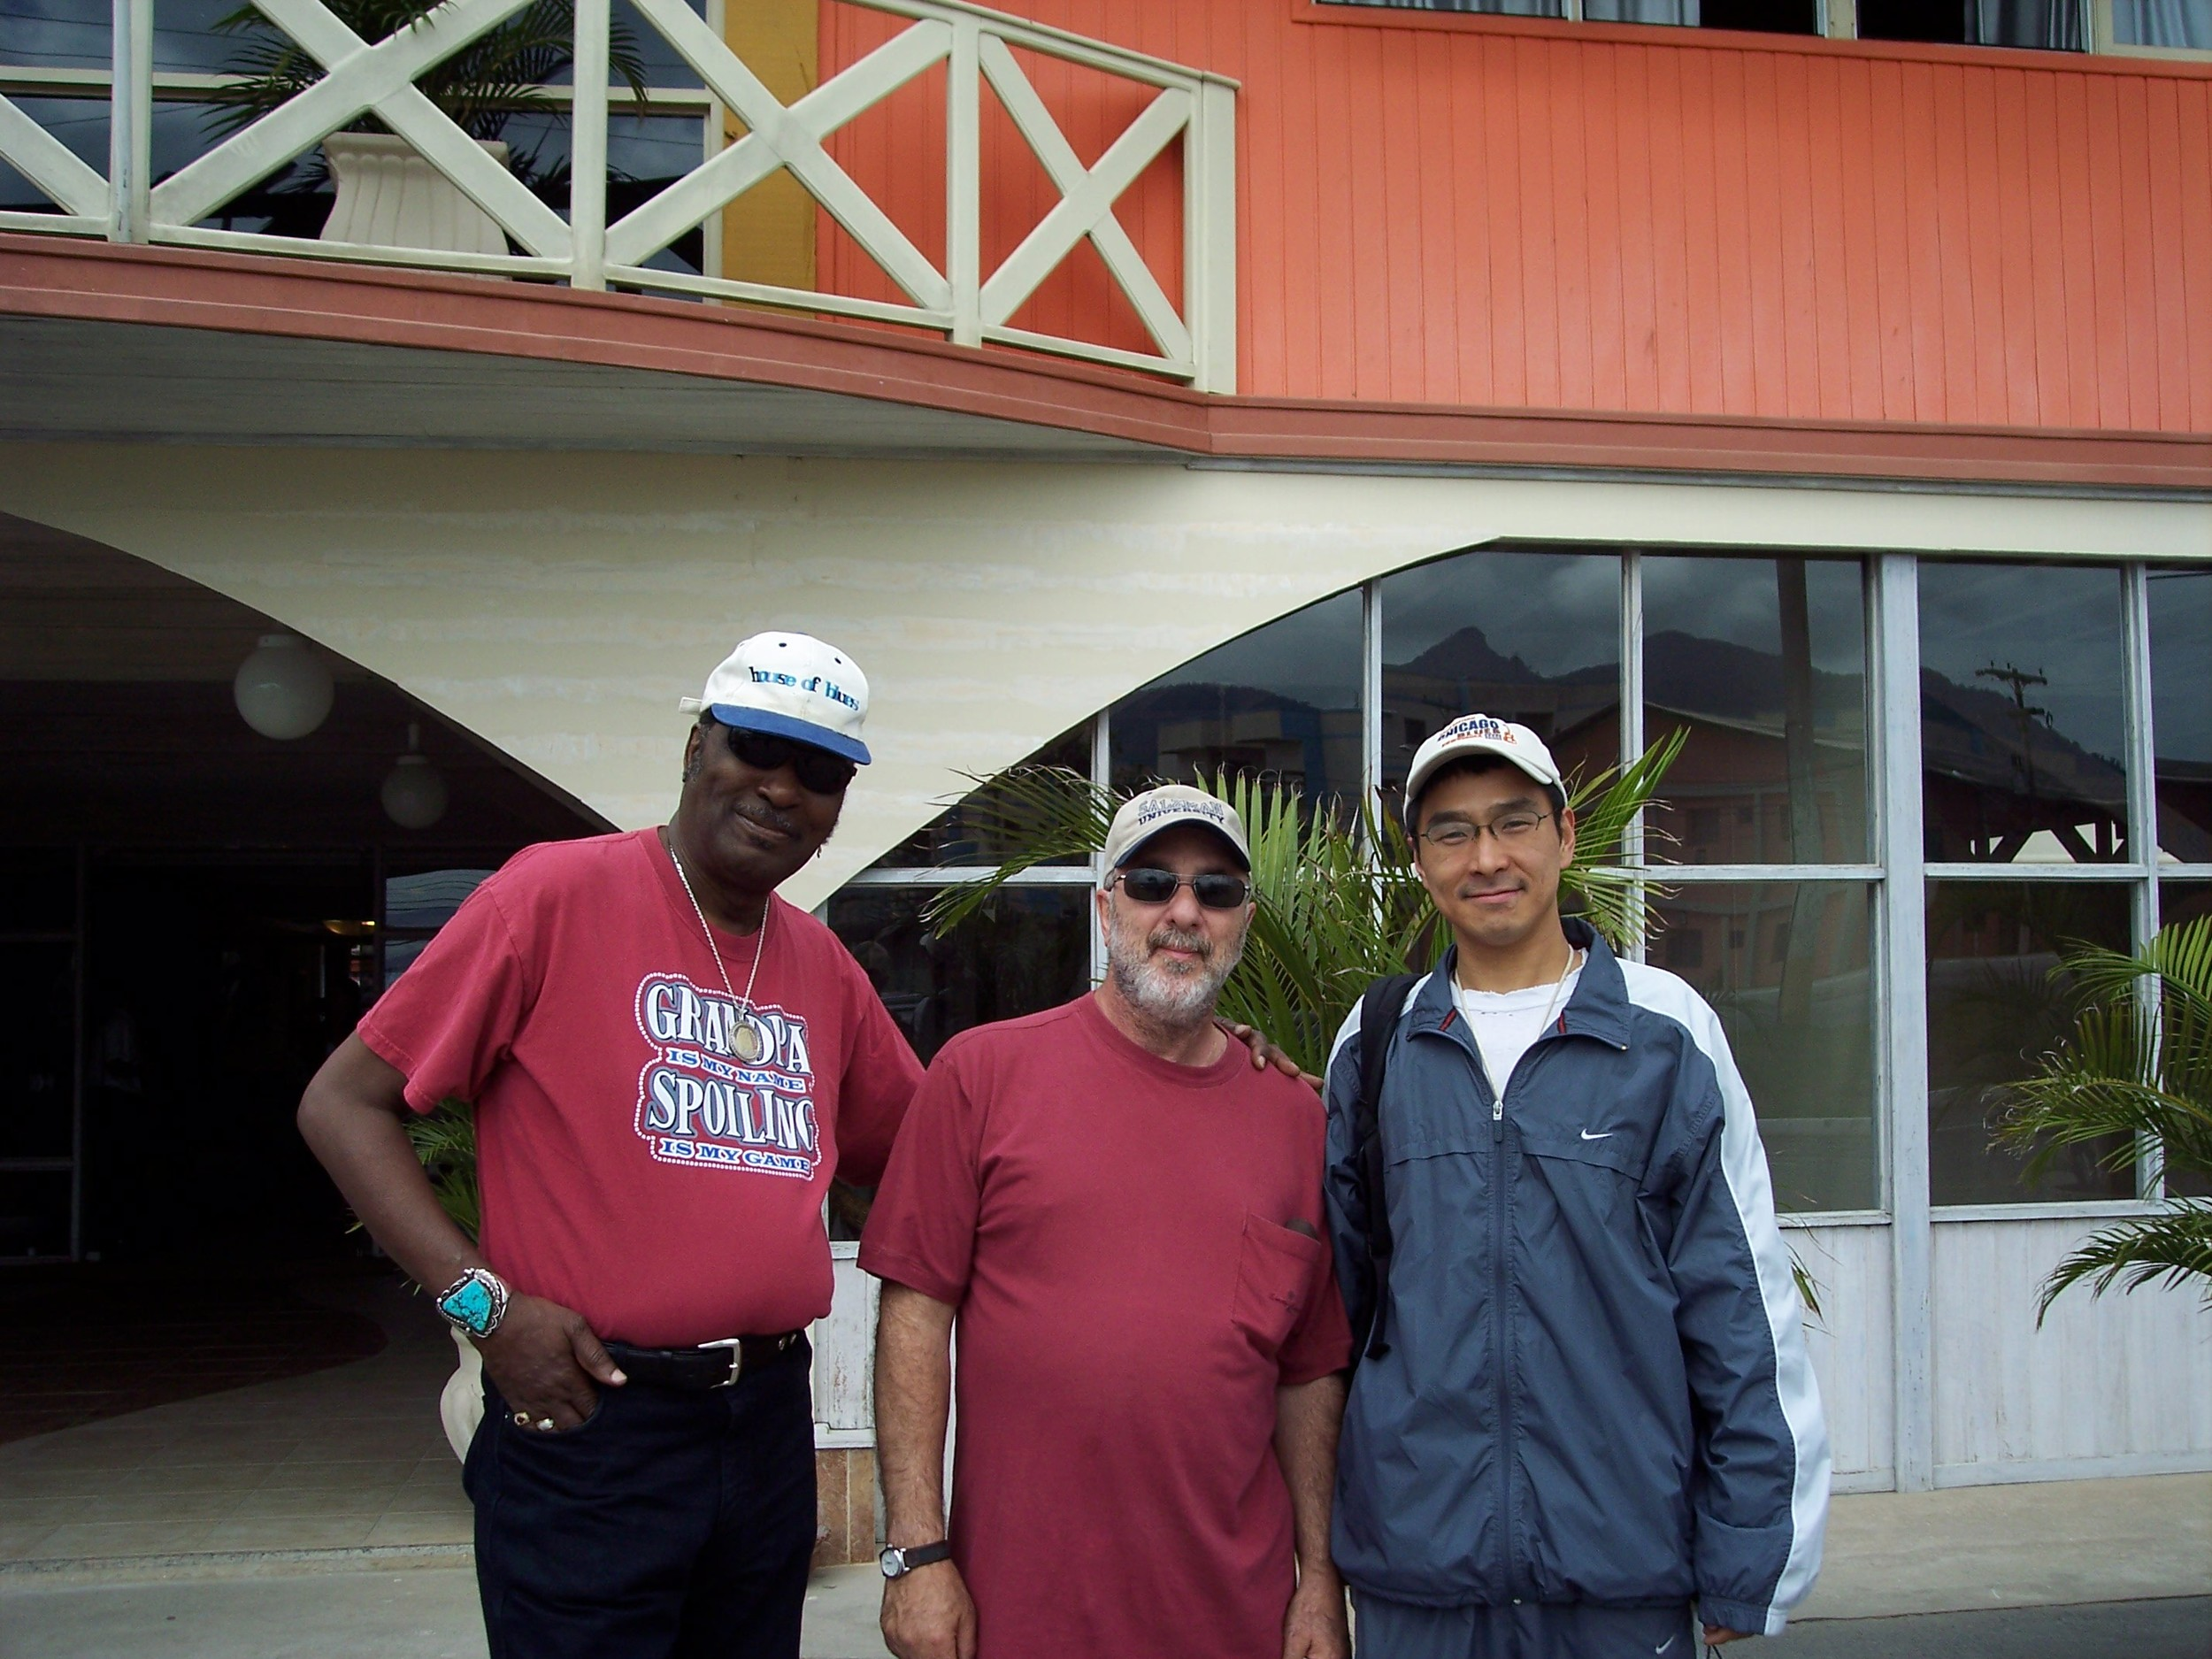 Eddy Clearwater, Marty Salzman and Shoji in Brazil